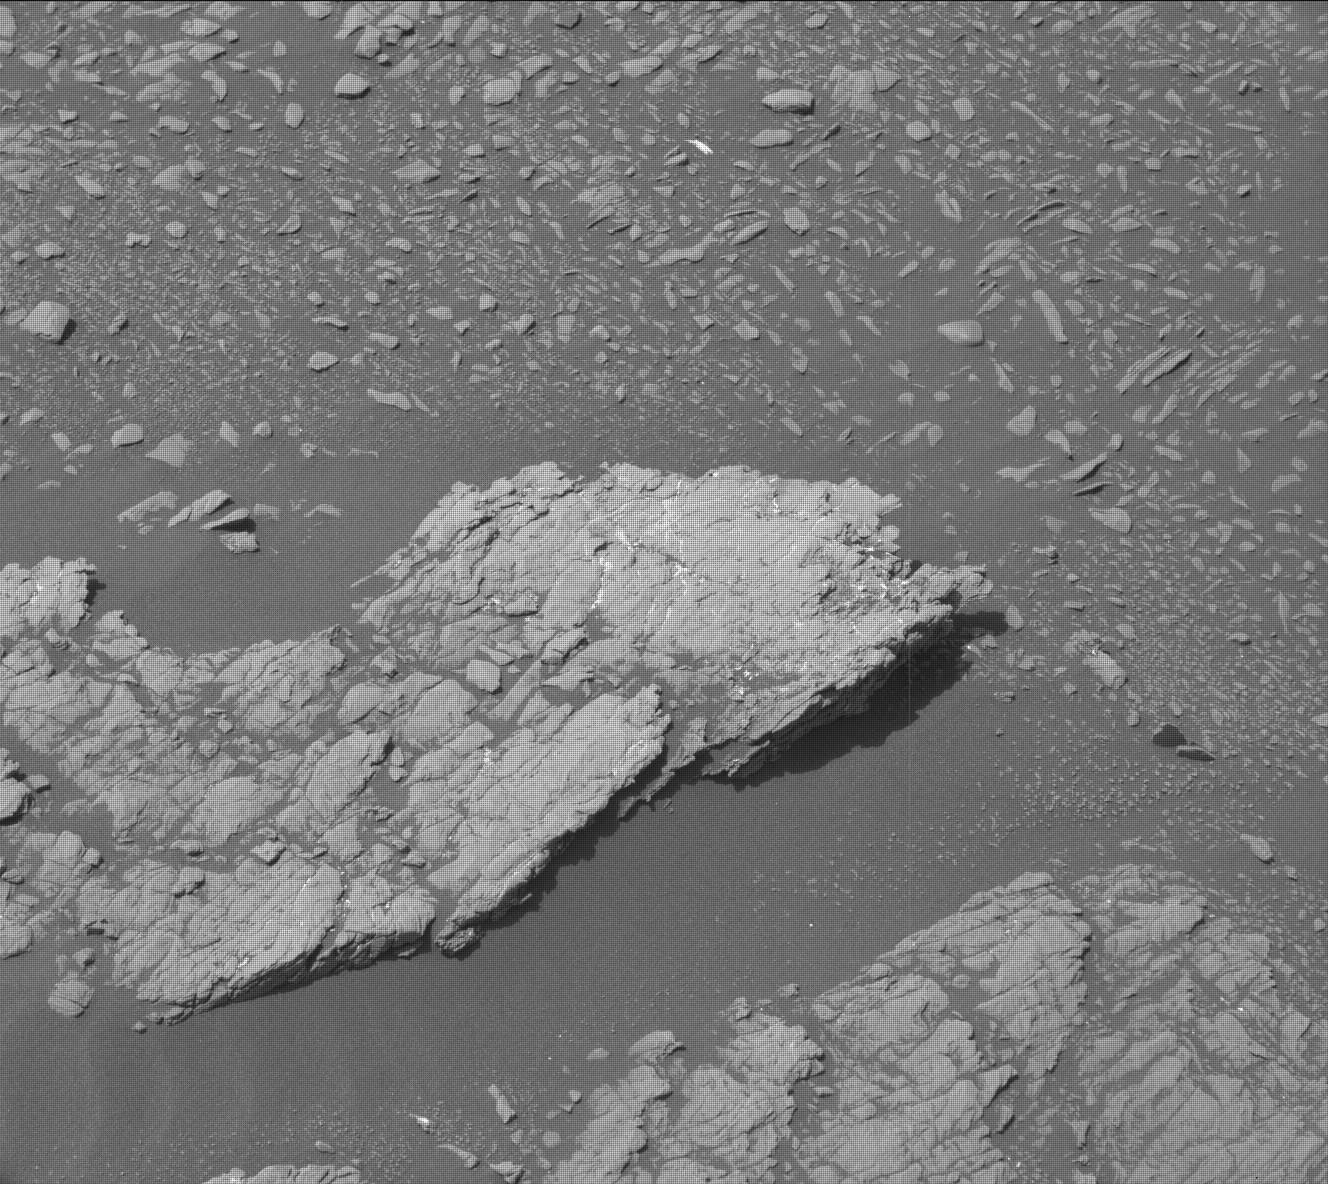 Sol 2379: Wrapping up at Aberlady